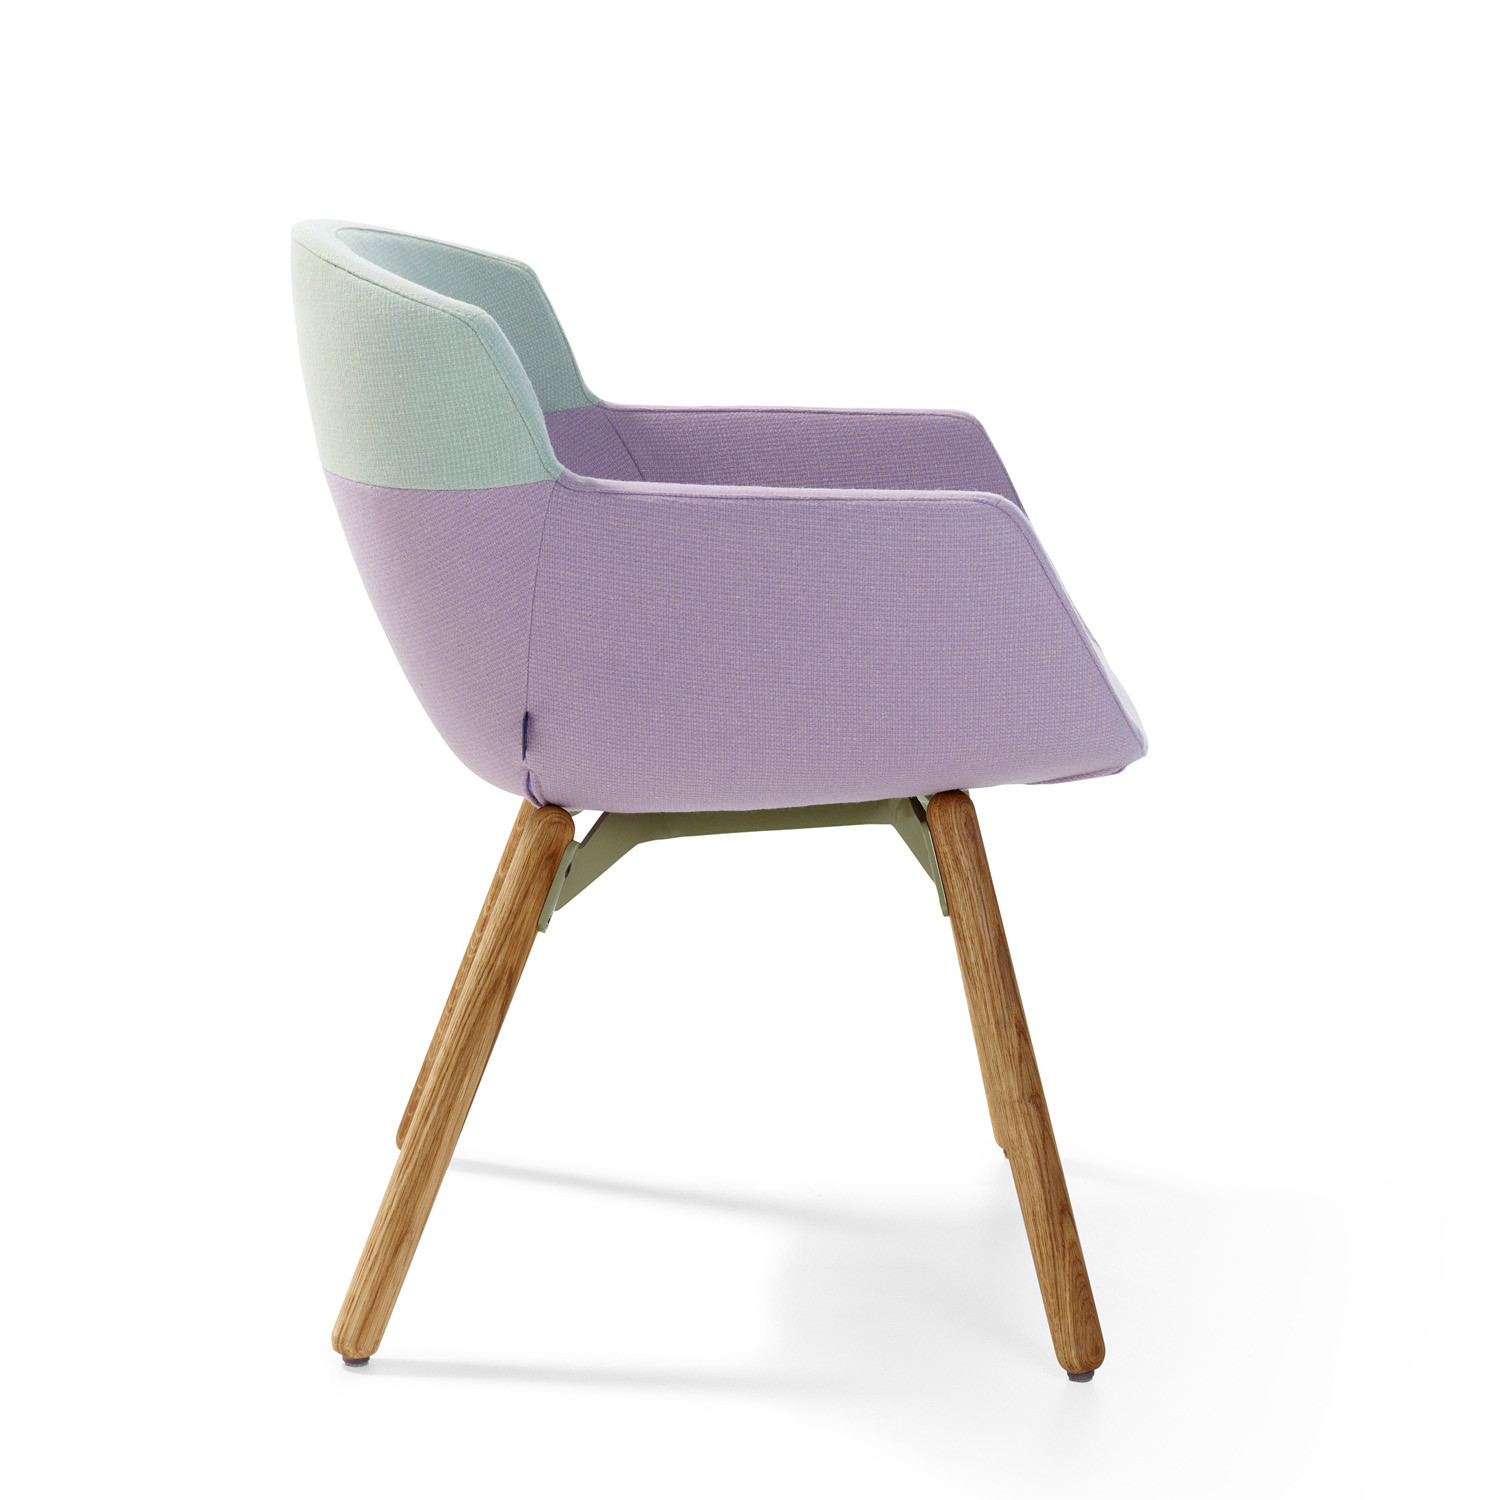 Mood Armchair with wooden frame